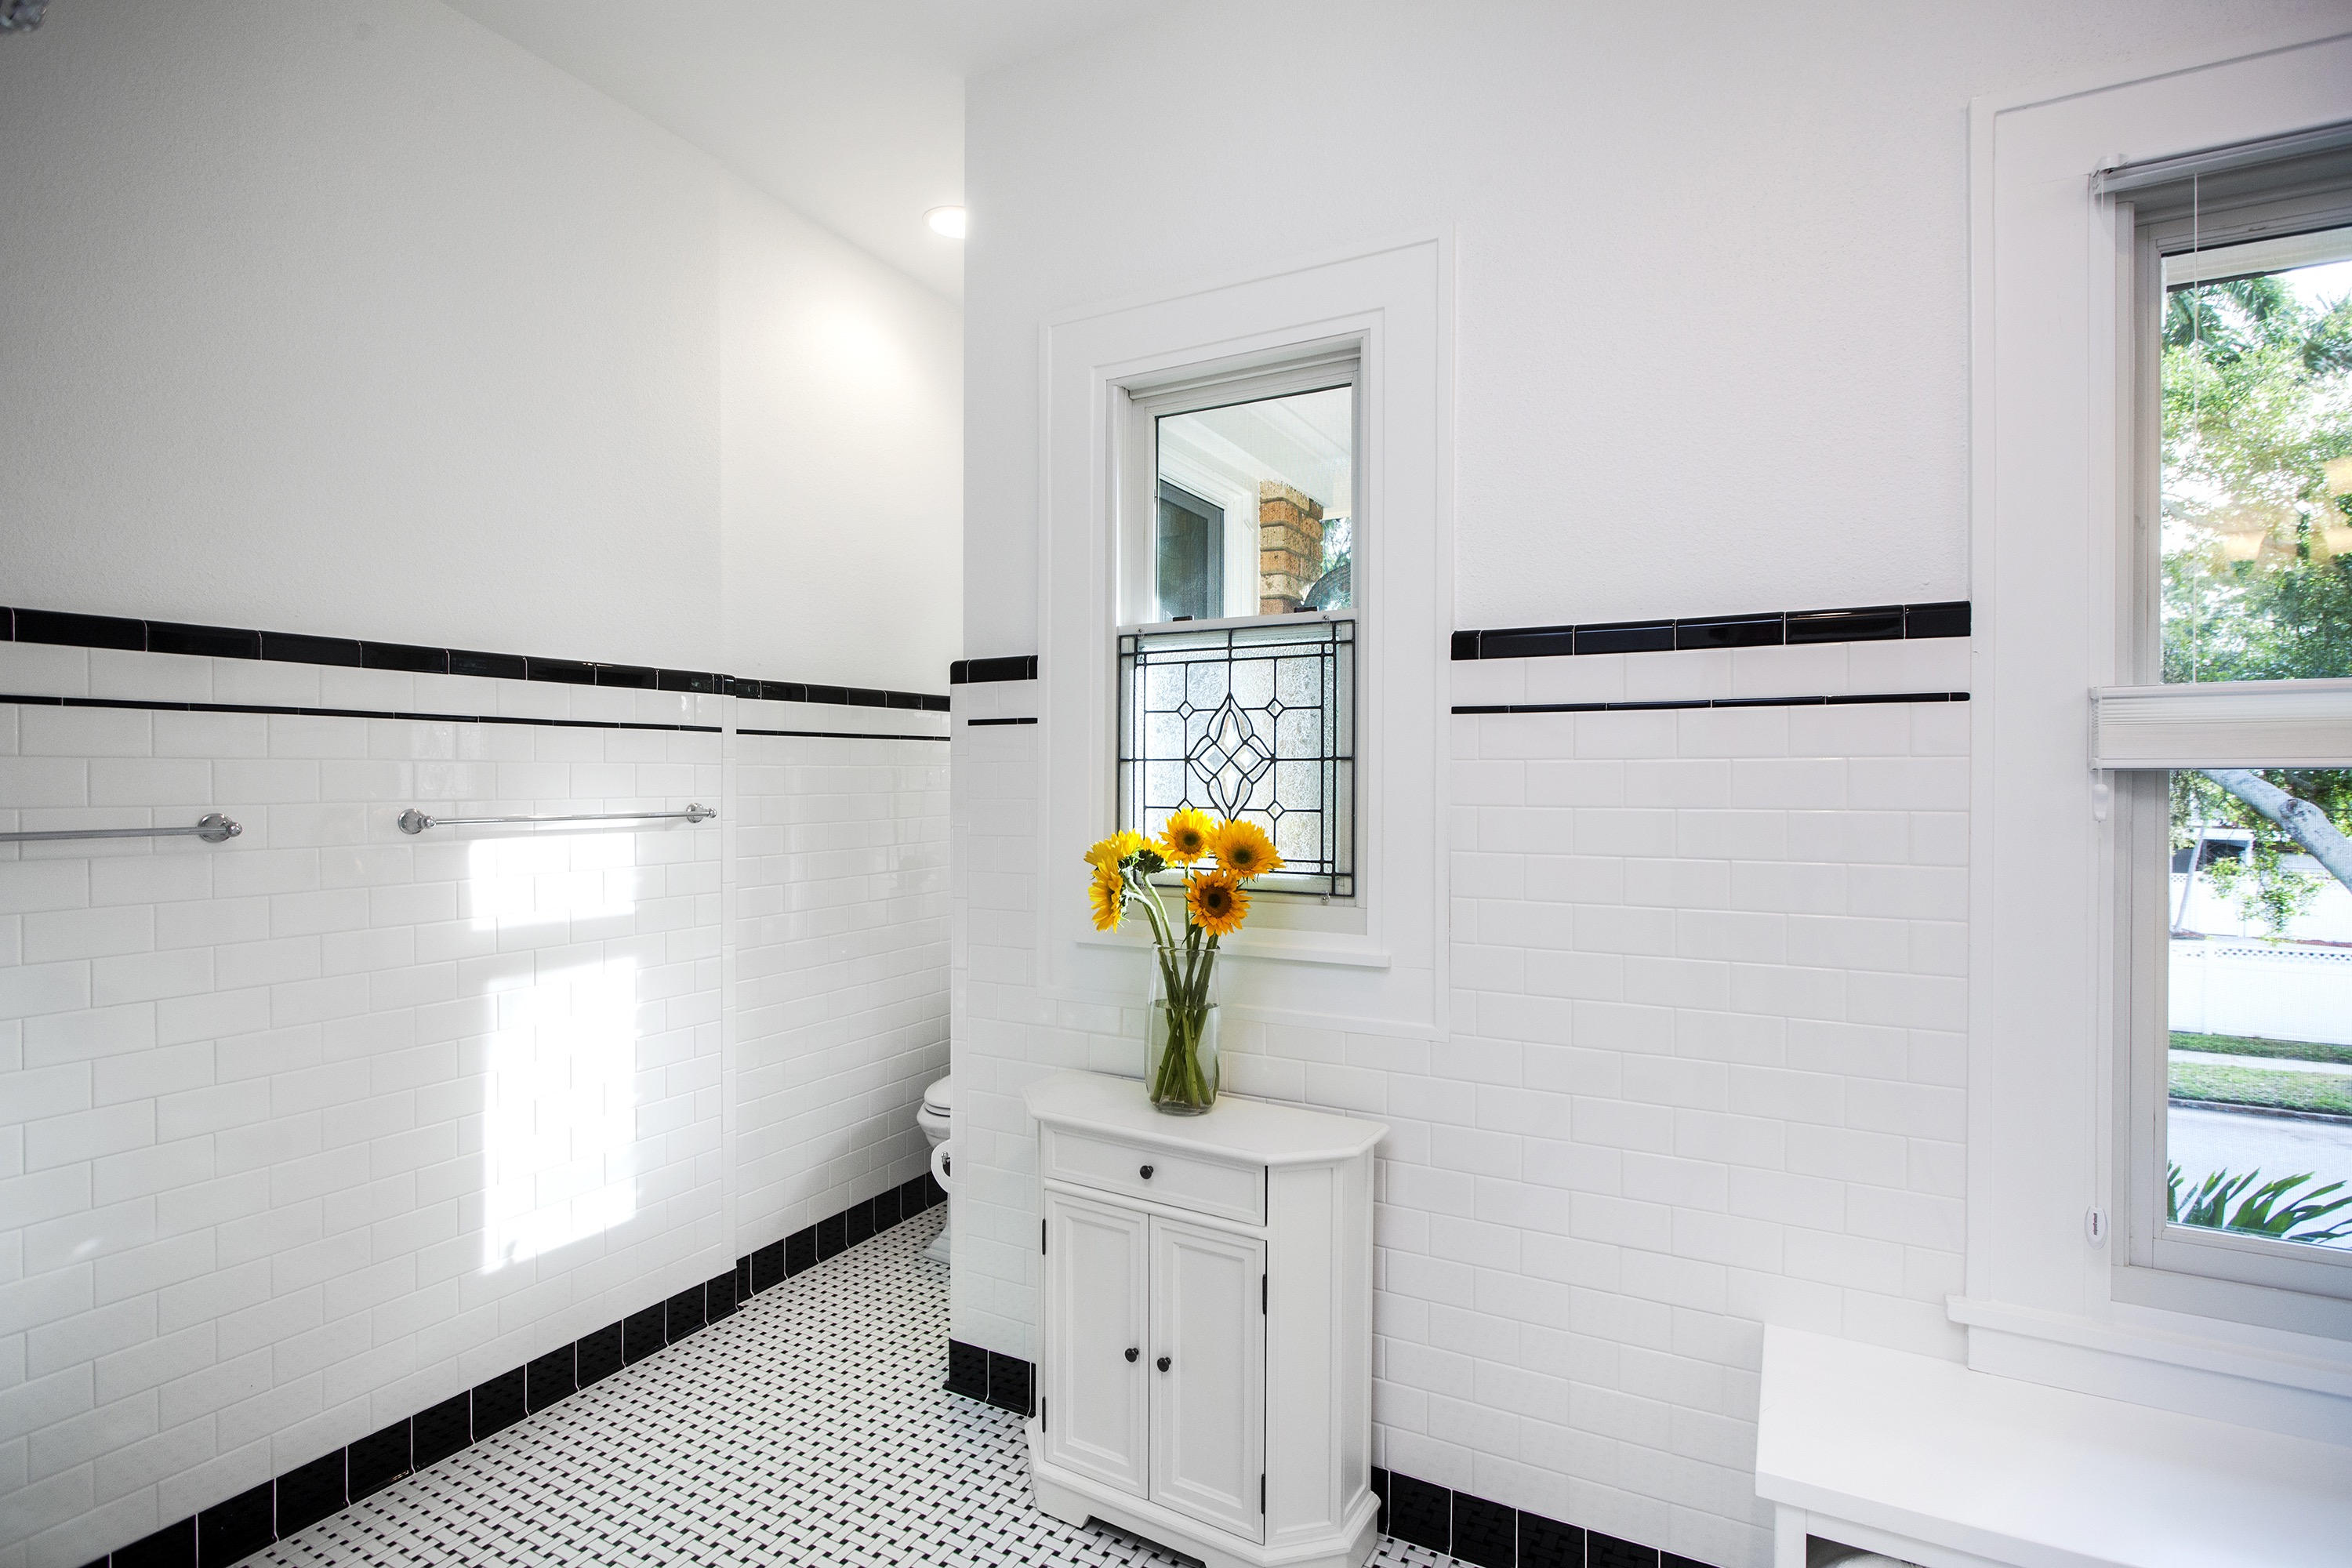 Sunflower Decor For Modern White Bathroom Accessories (View 14 of 14)